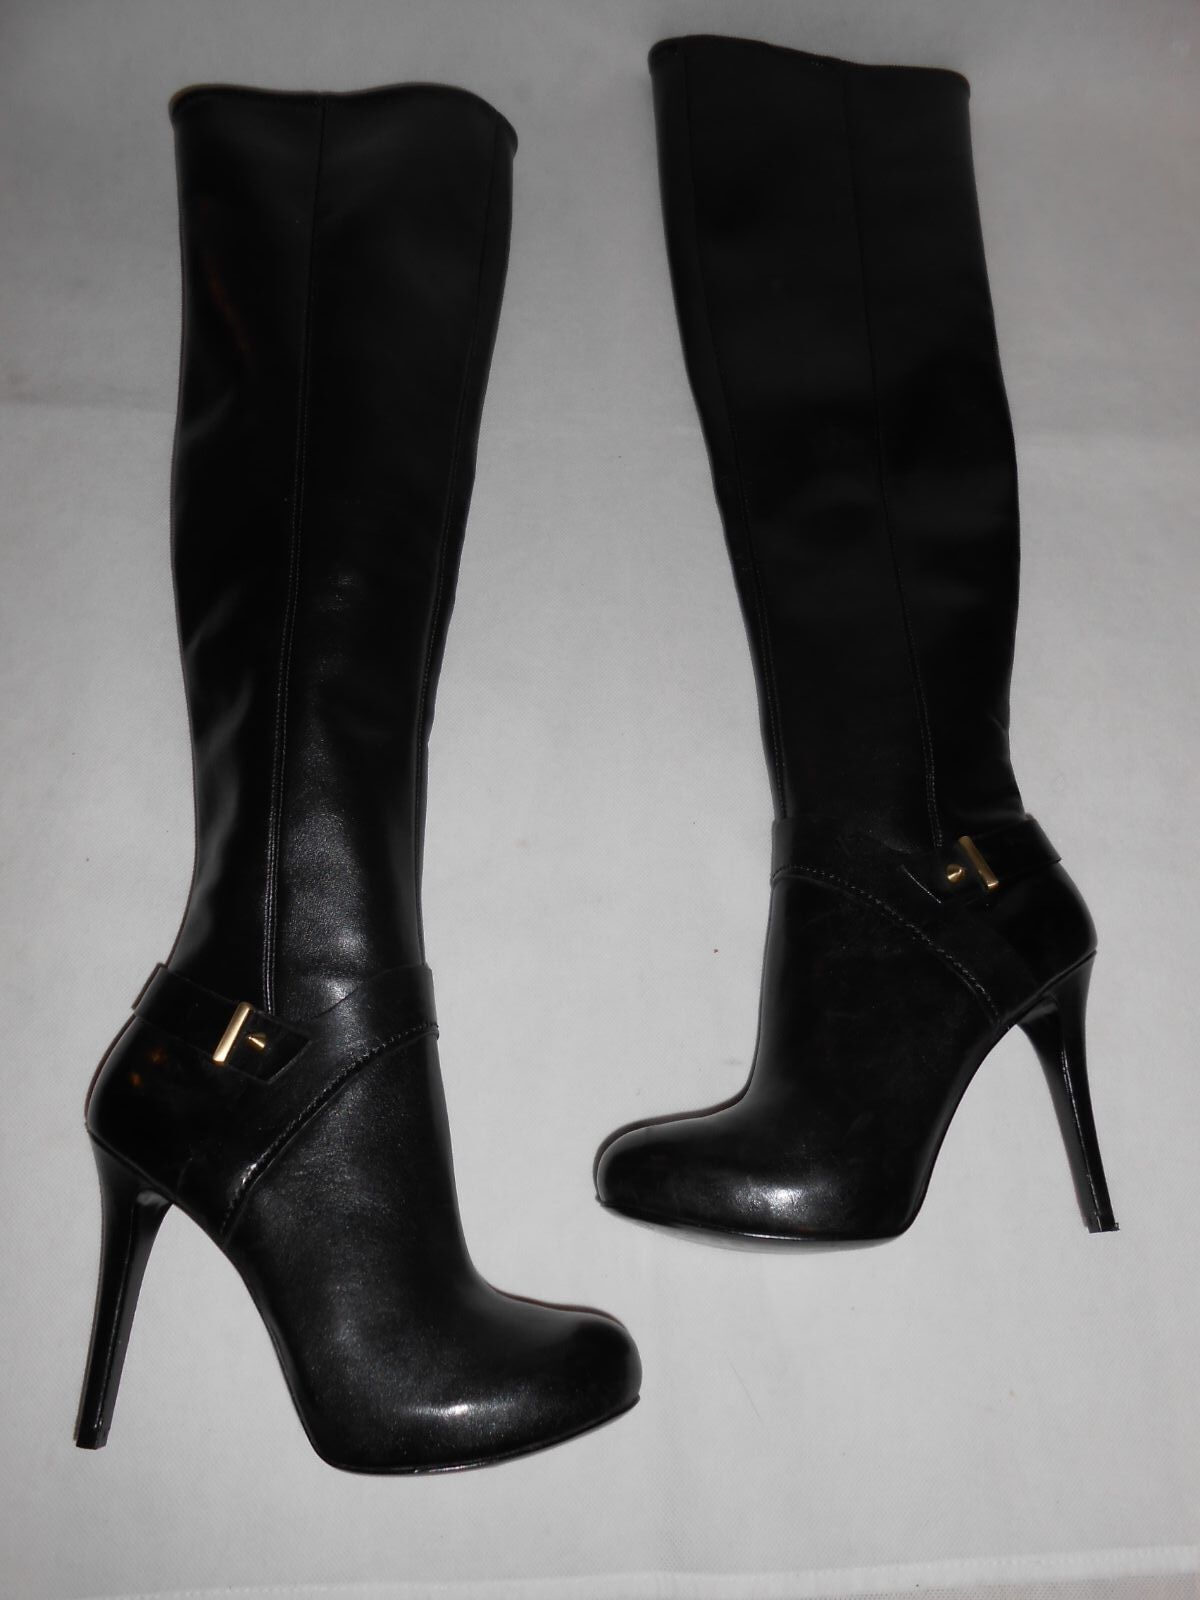 New GUESS GUESS GUESS black over knee PU boots US6,5, UK4 9451e1